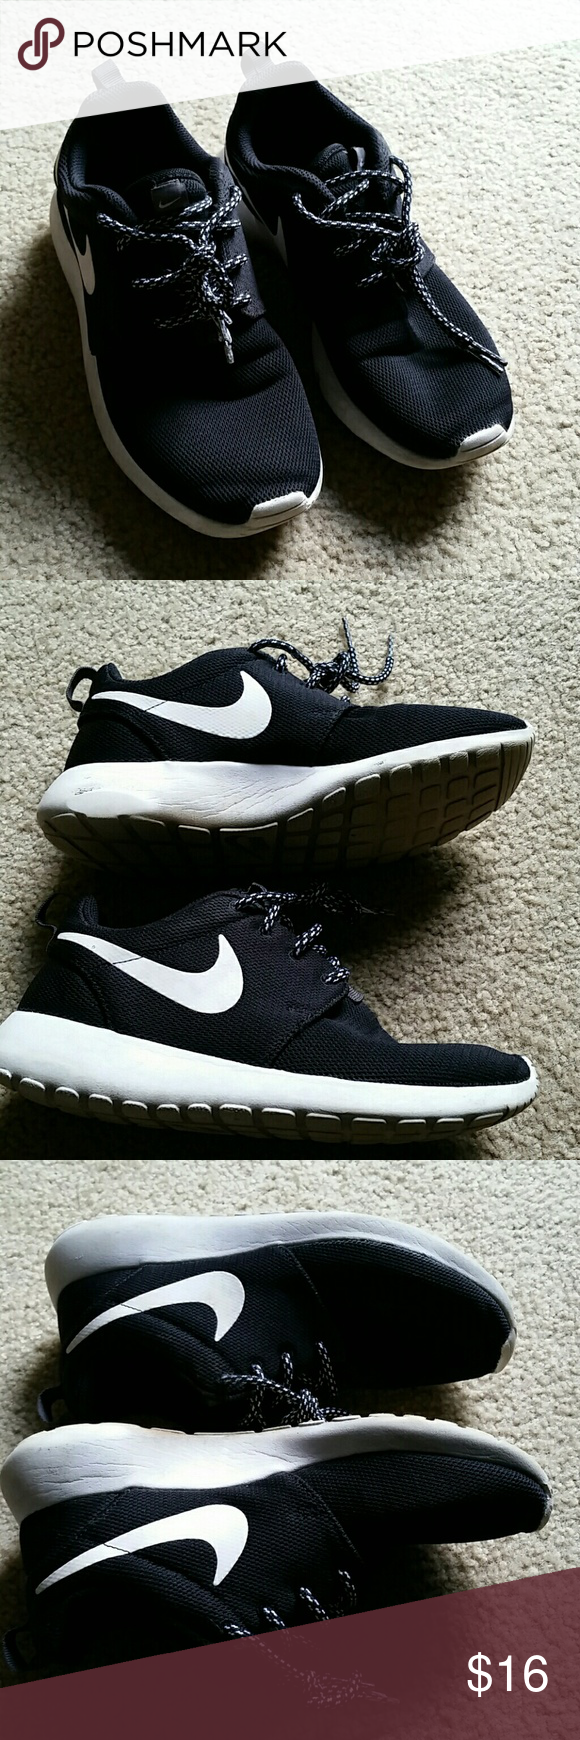 Nike Sneakers Black with white trim